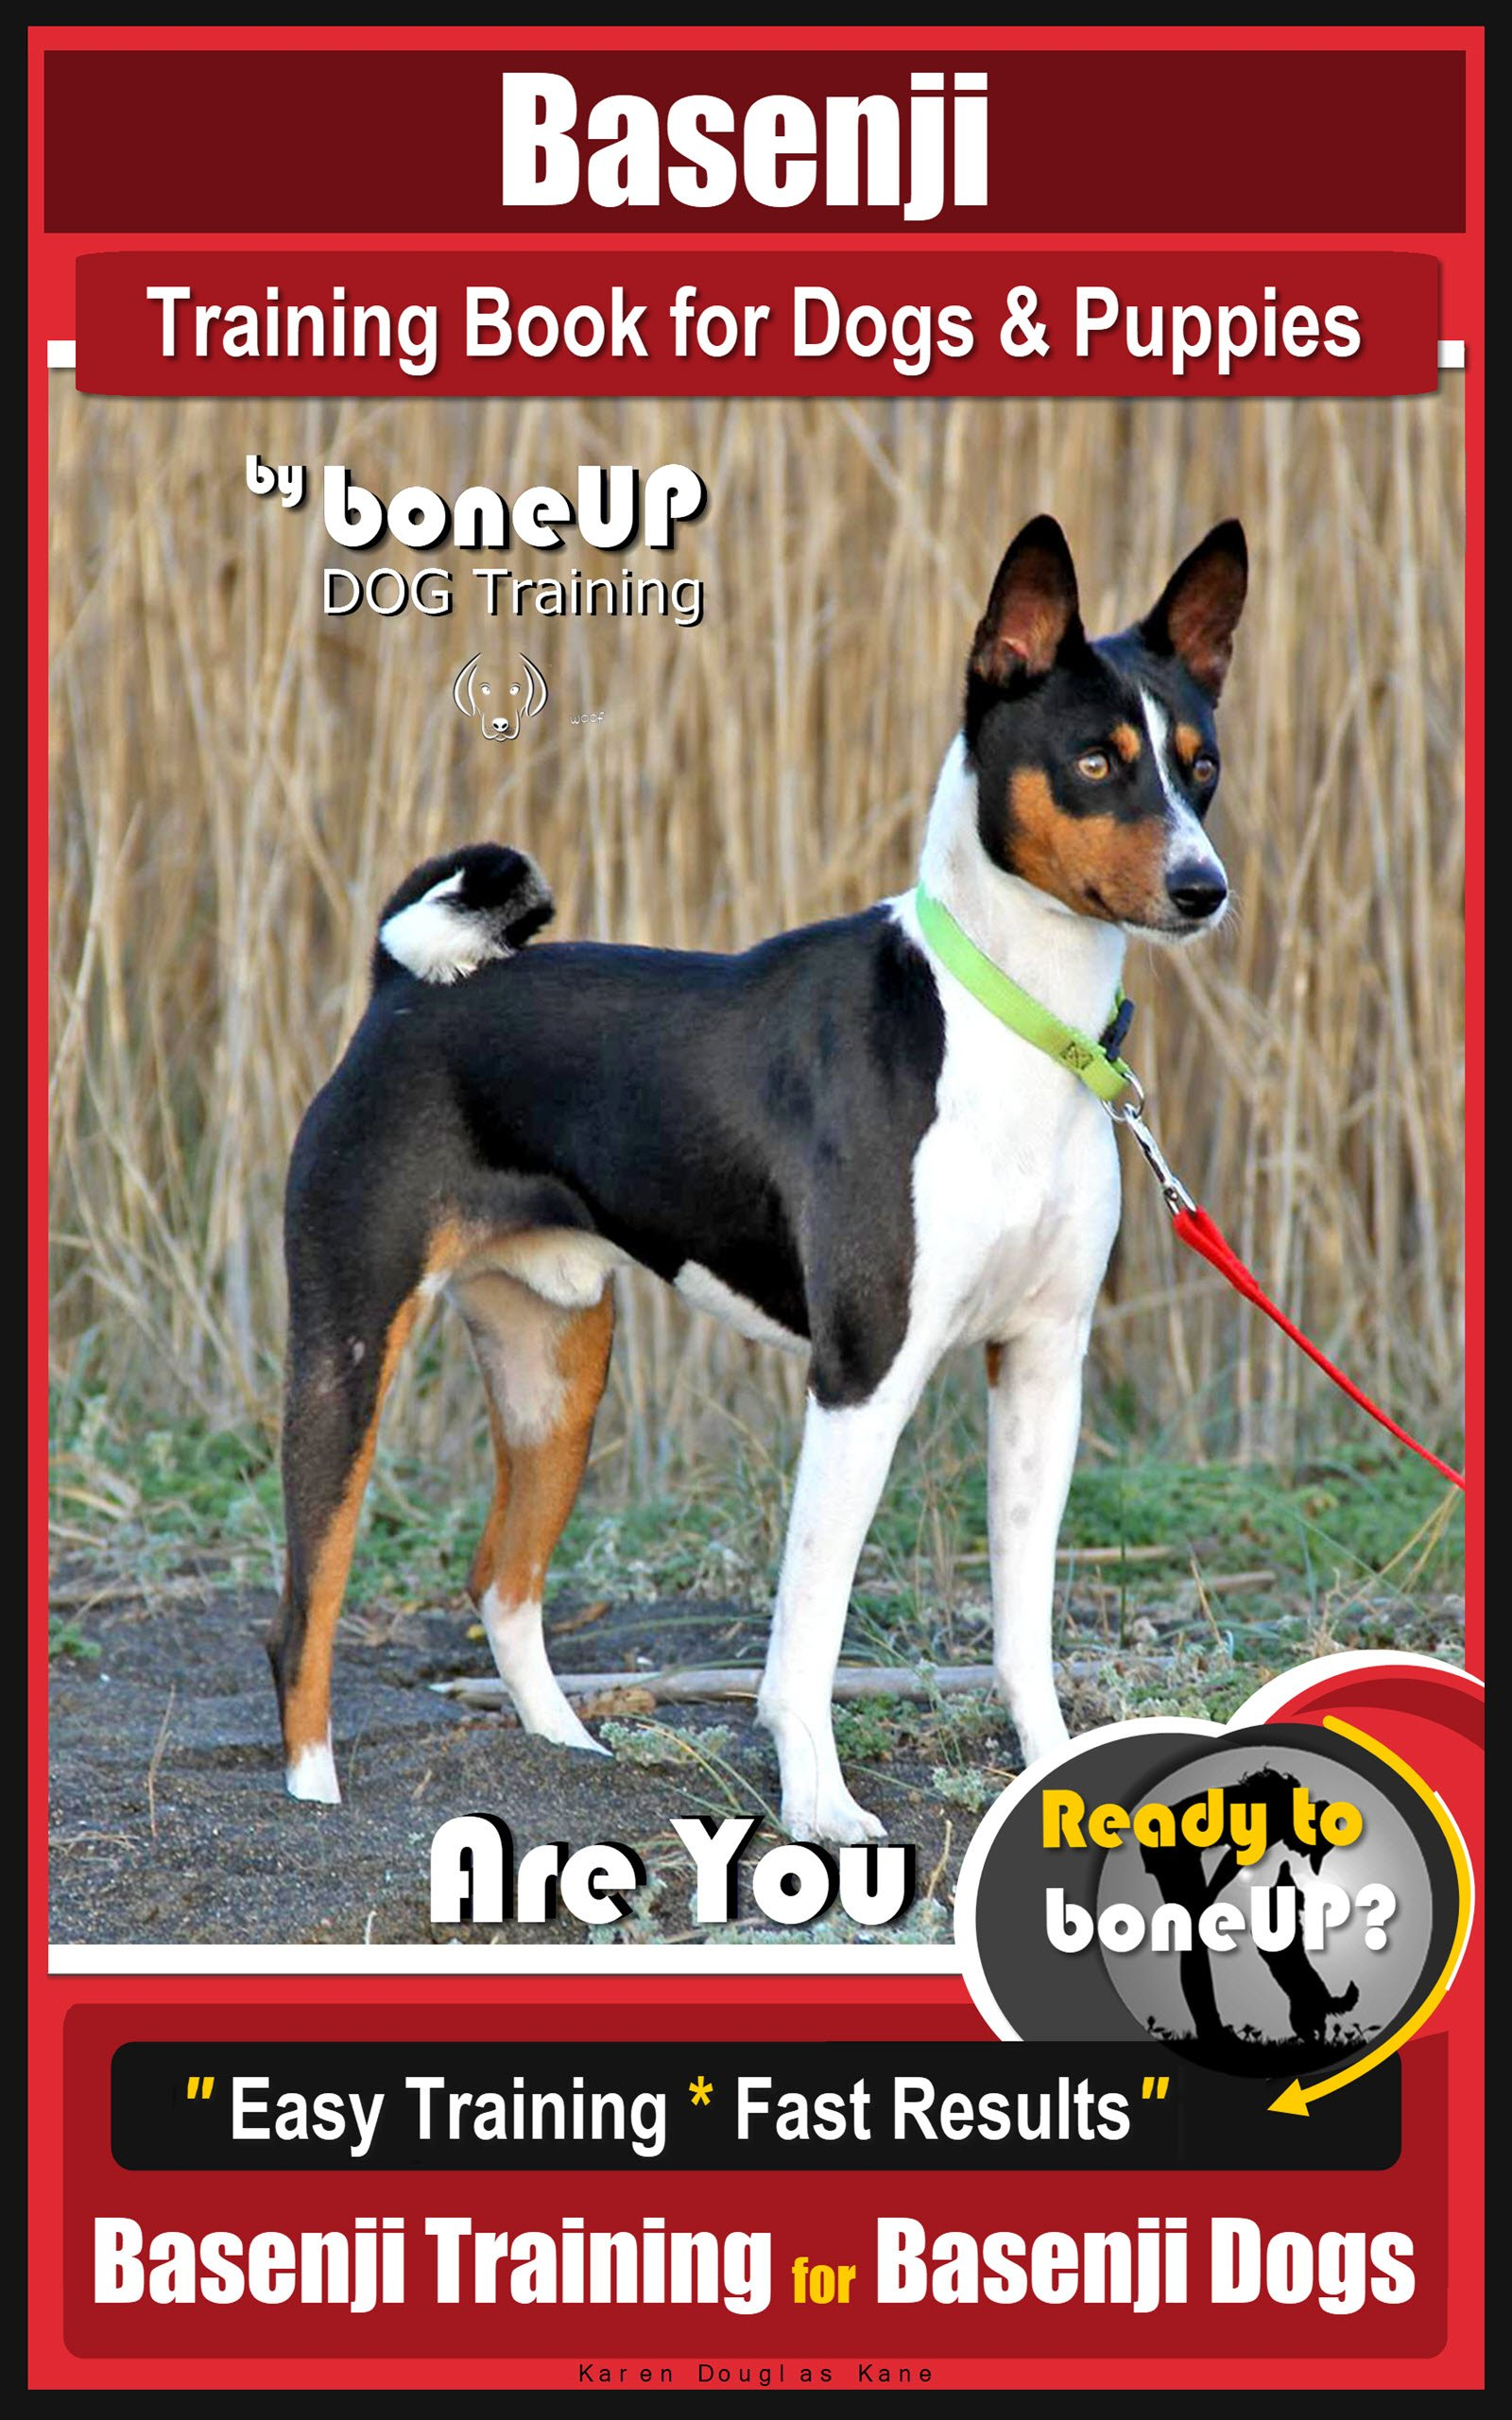 Basenji Training Book for Dogs & Puppies By BoneUP DOG Training: Are You Ready to Bone Up? Easy Training * Fast Results…